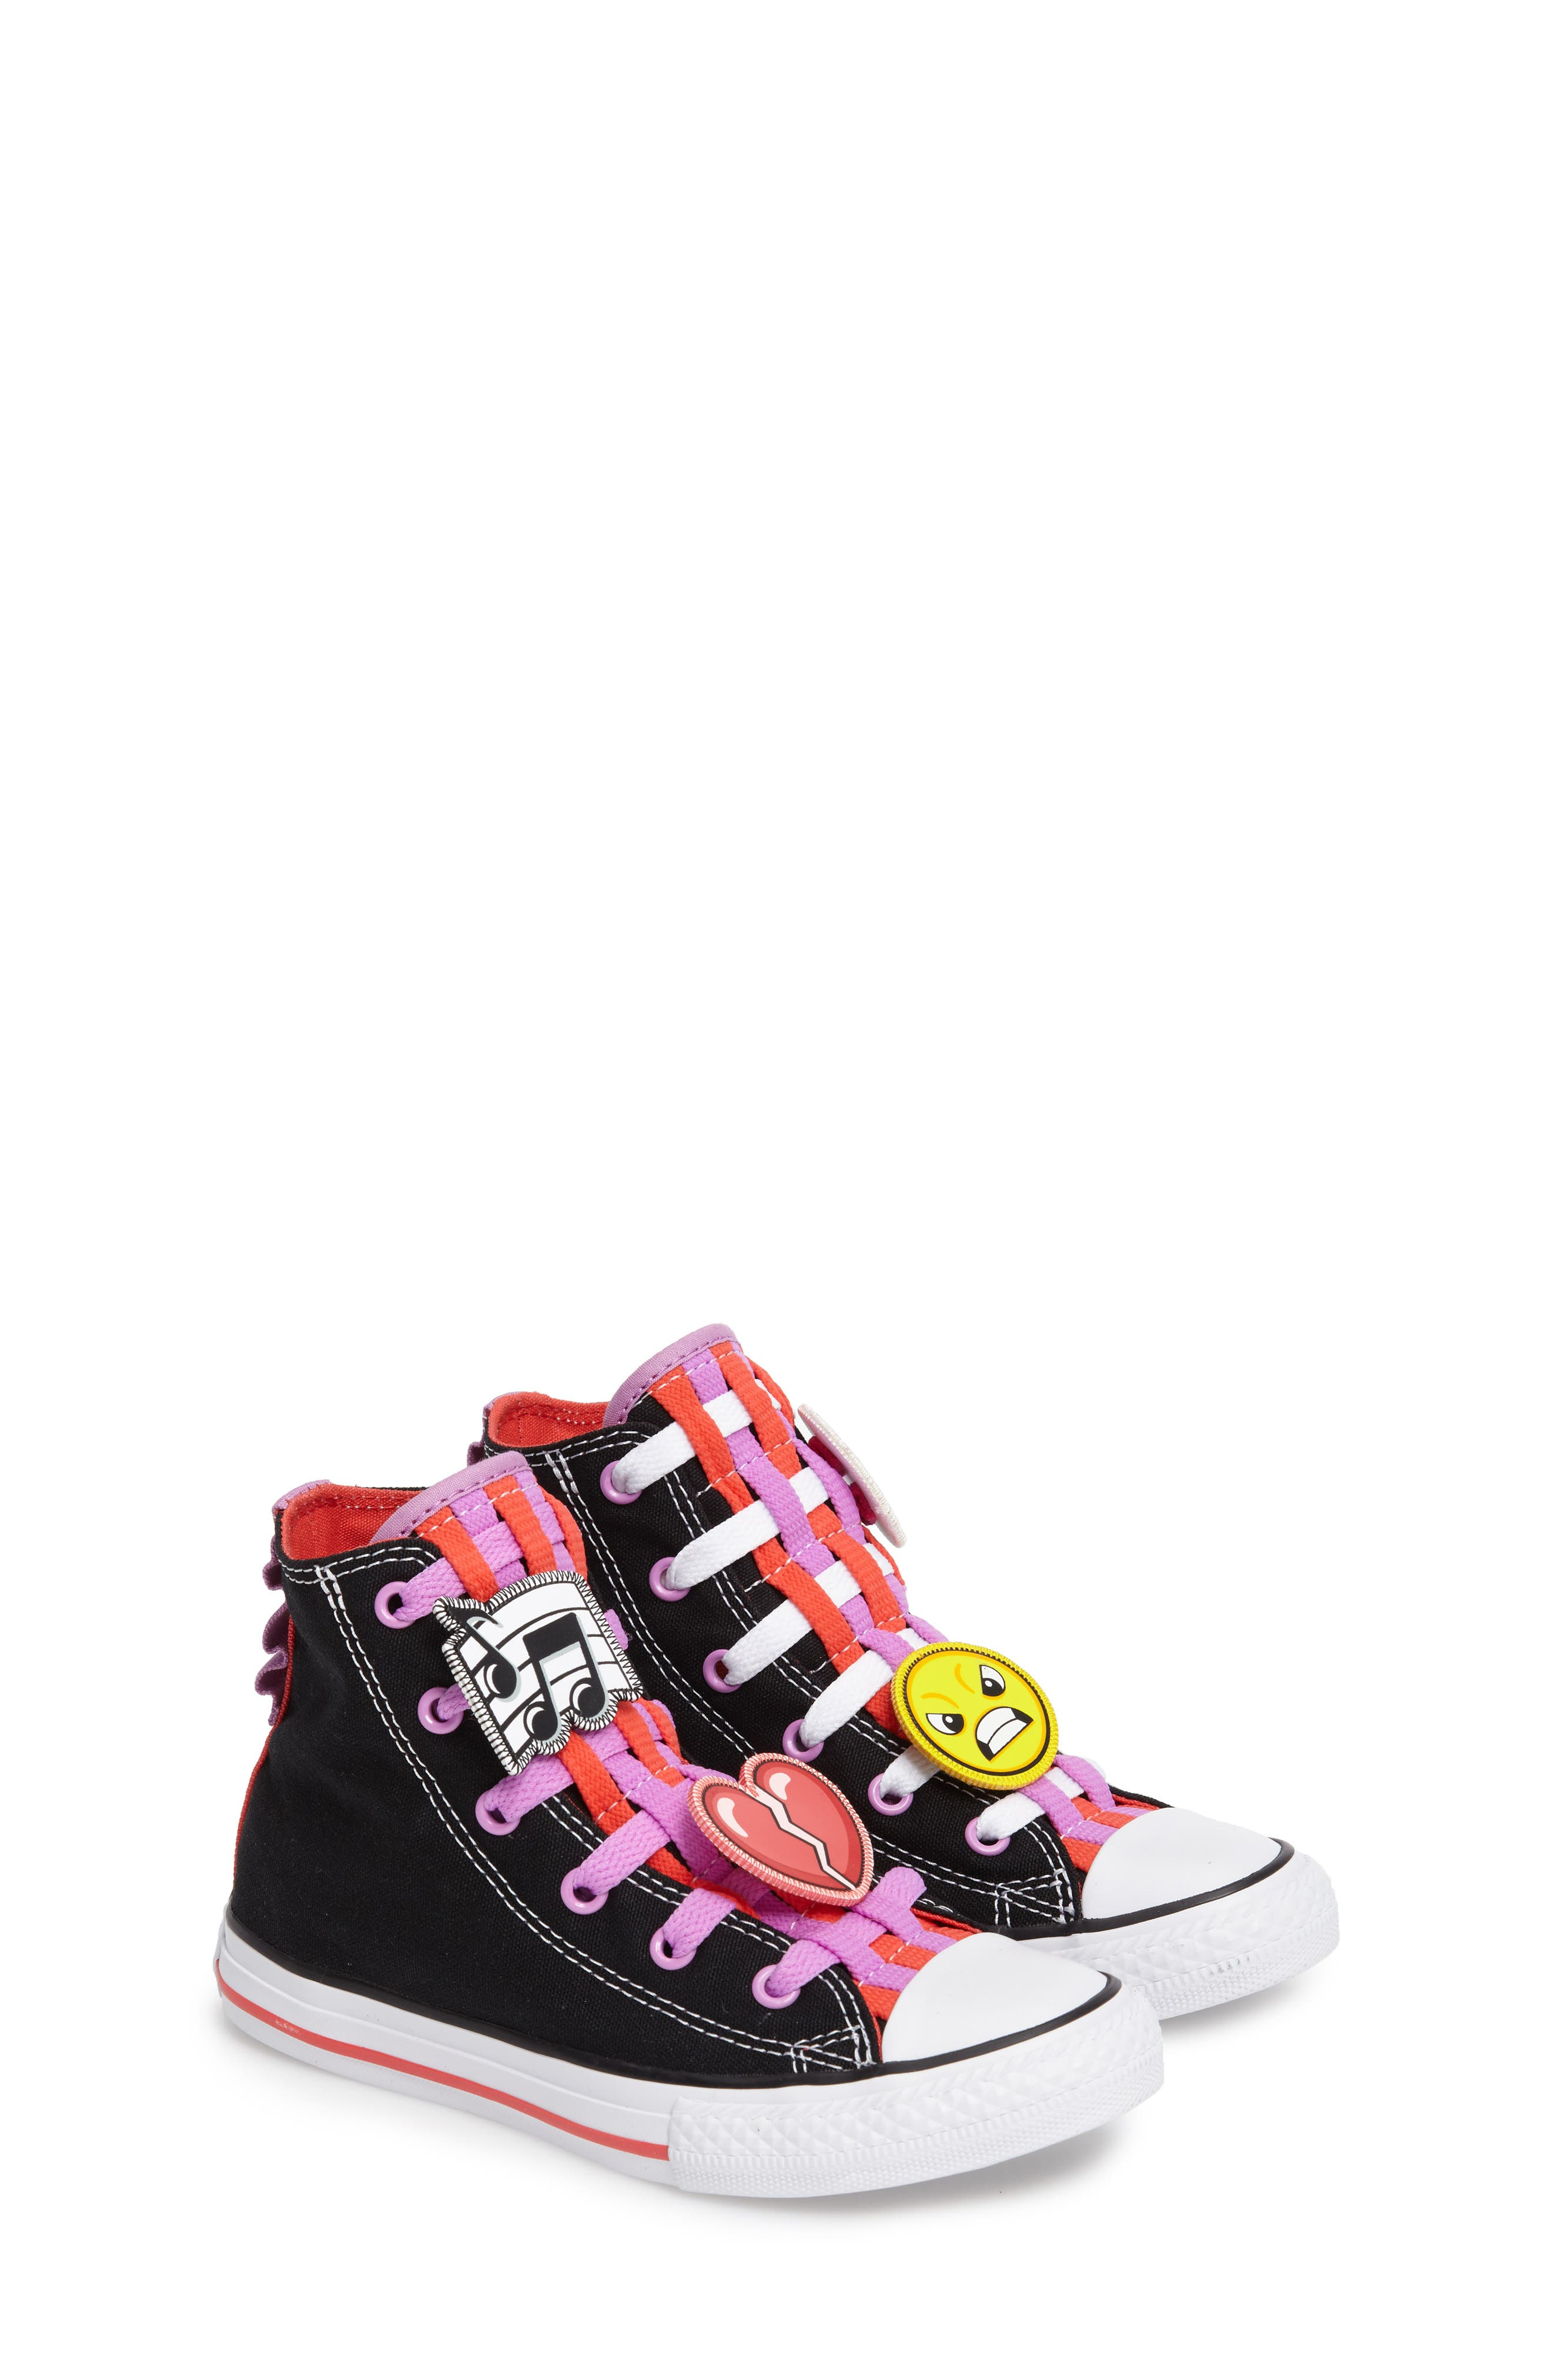 All star converse for girls 2018